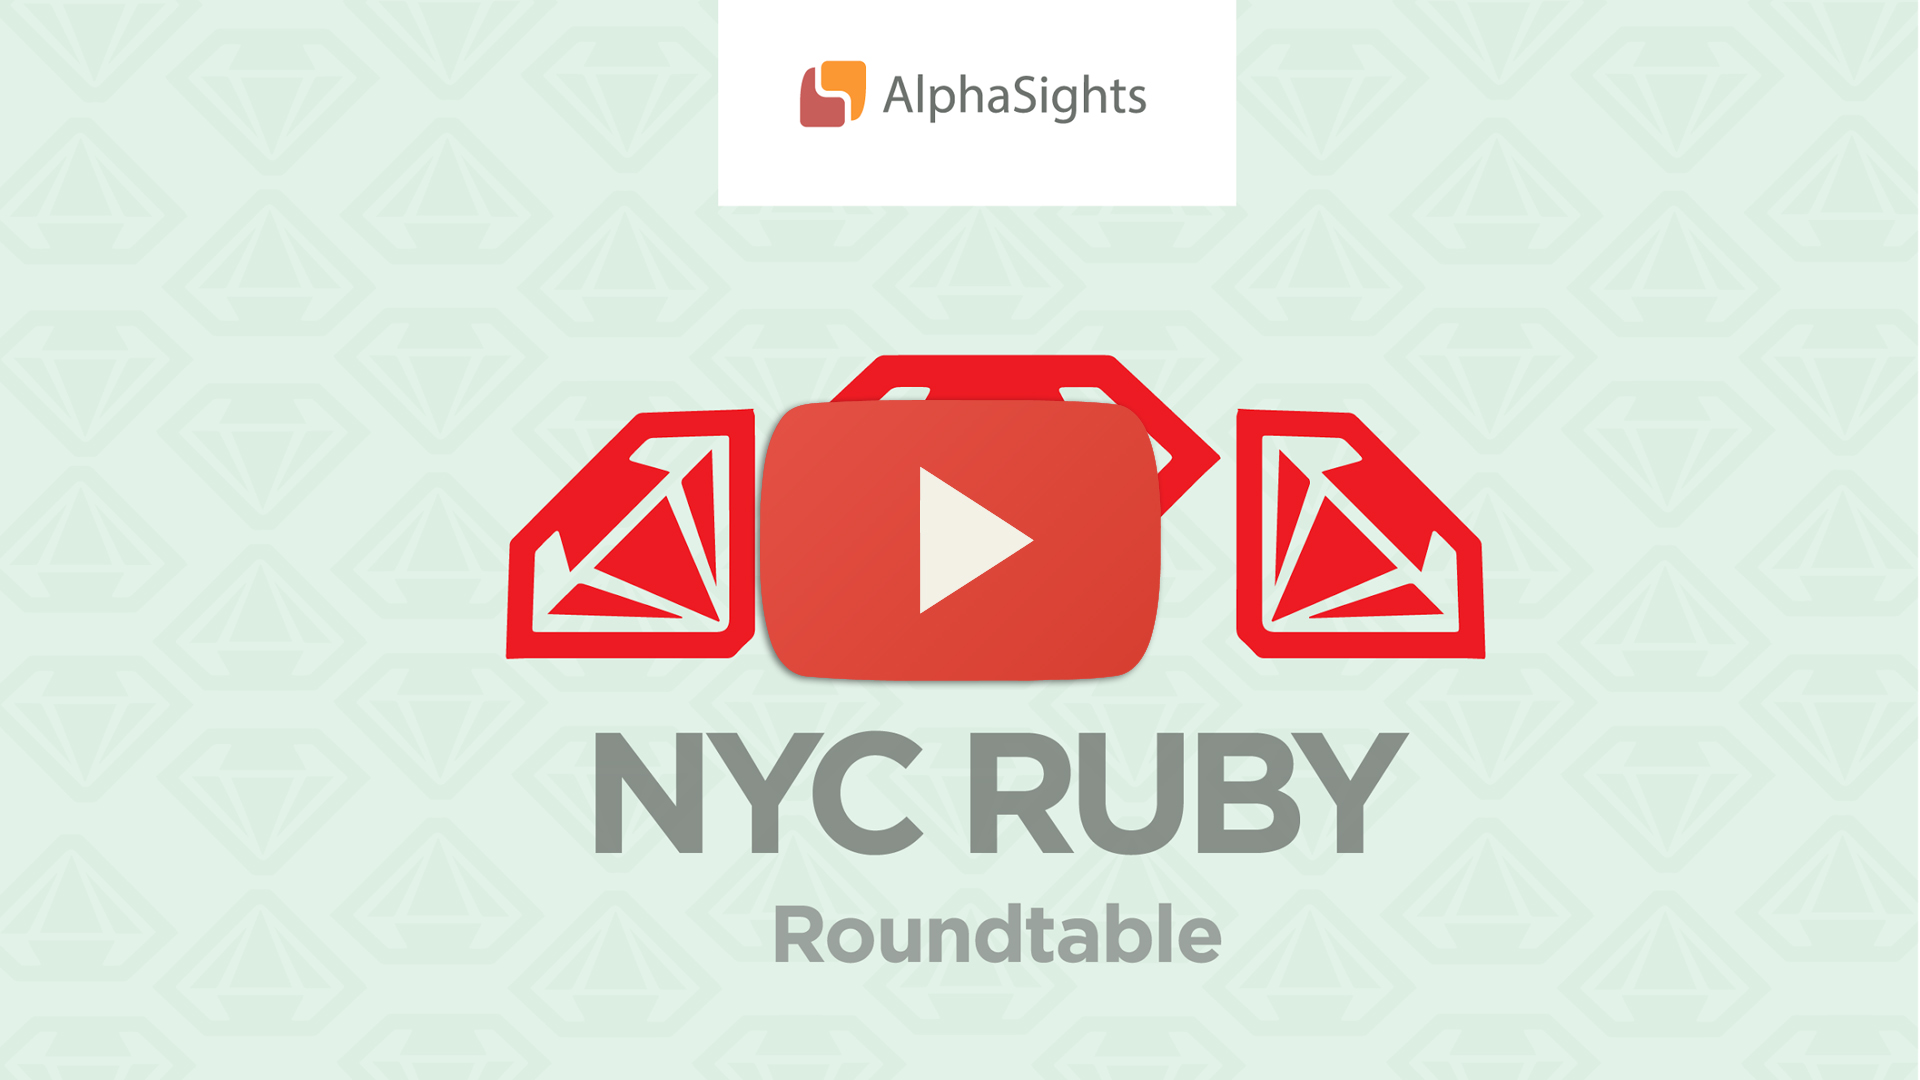 Ruby roundtable large